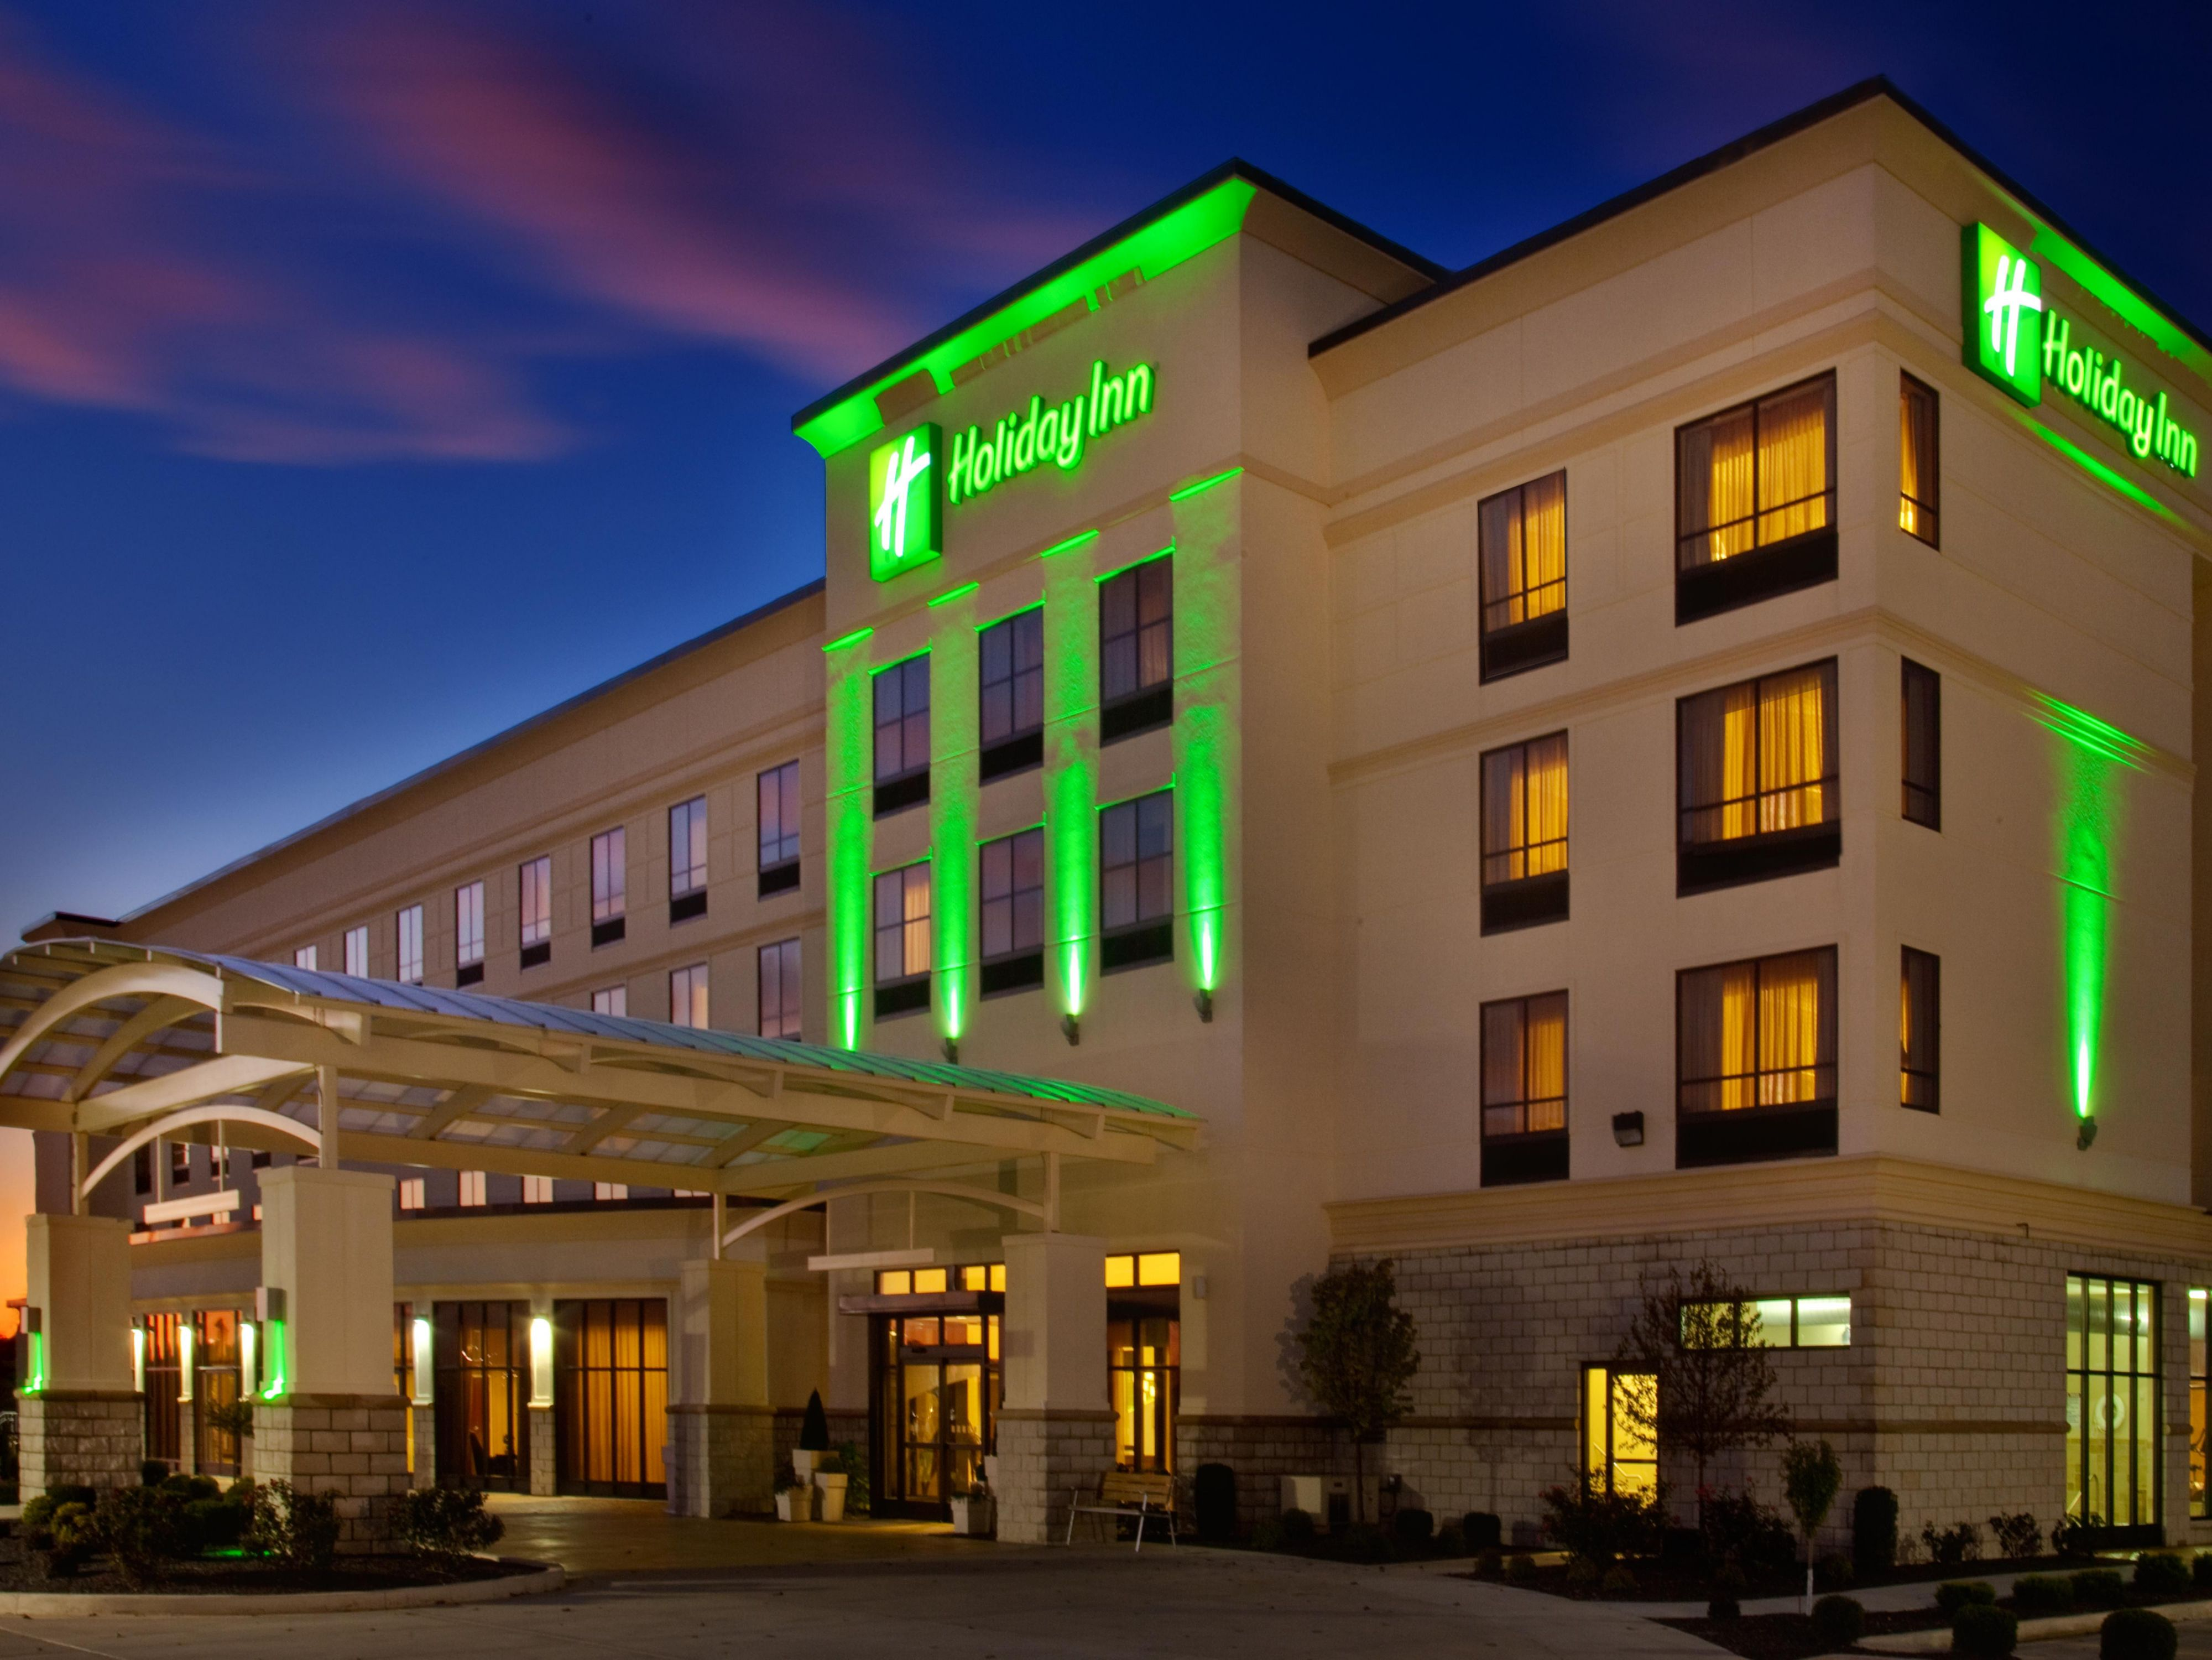 You are welcome day or night at Holiday Inn Quincy IL